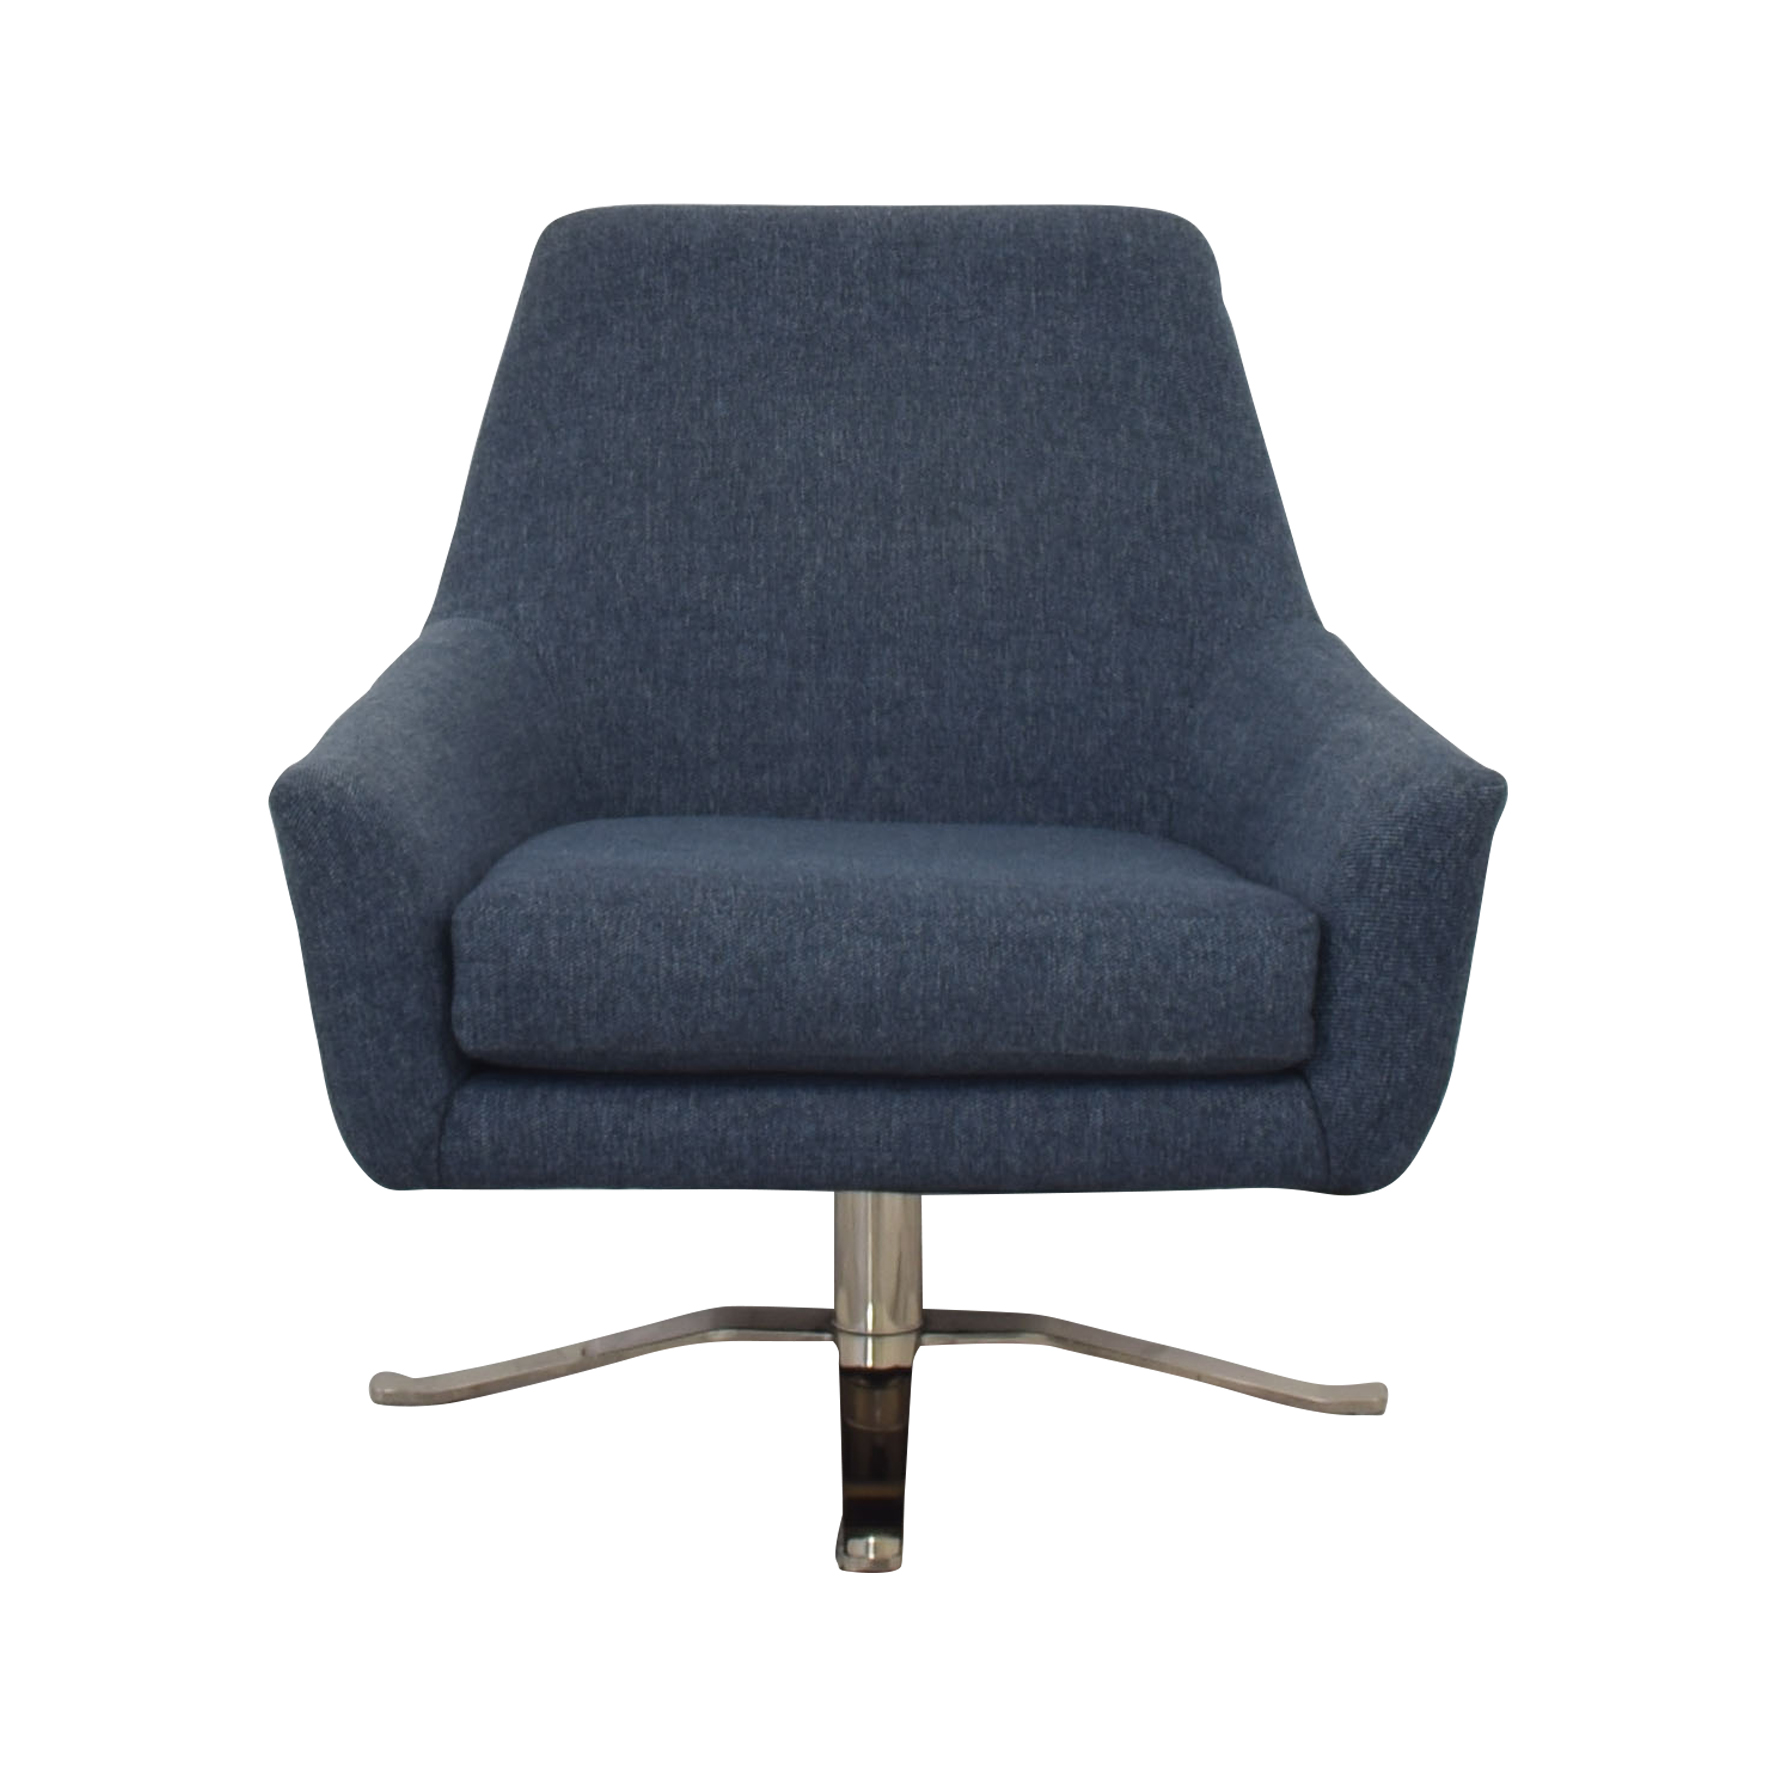 West Elm West Elm Lucas Swivel Base Chair dimensions